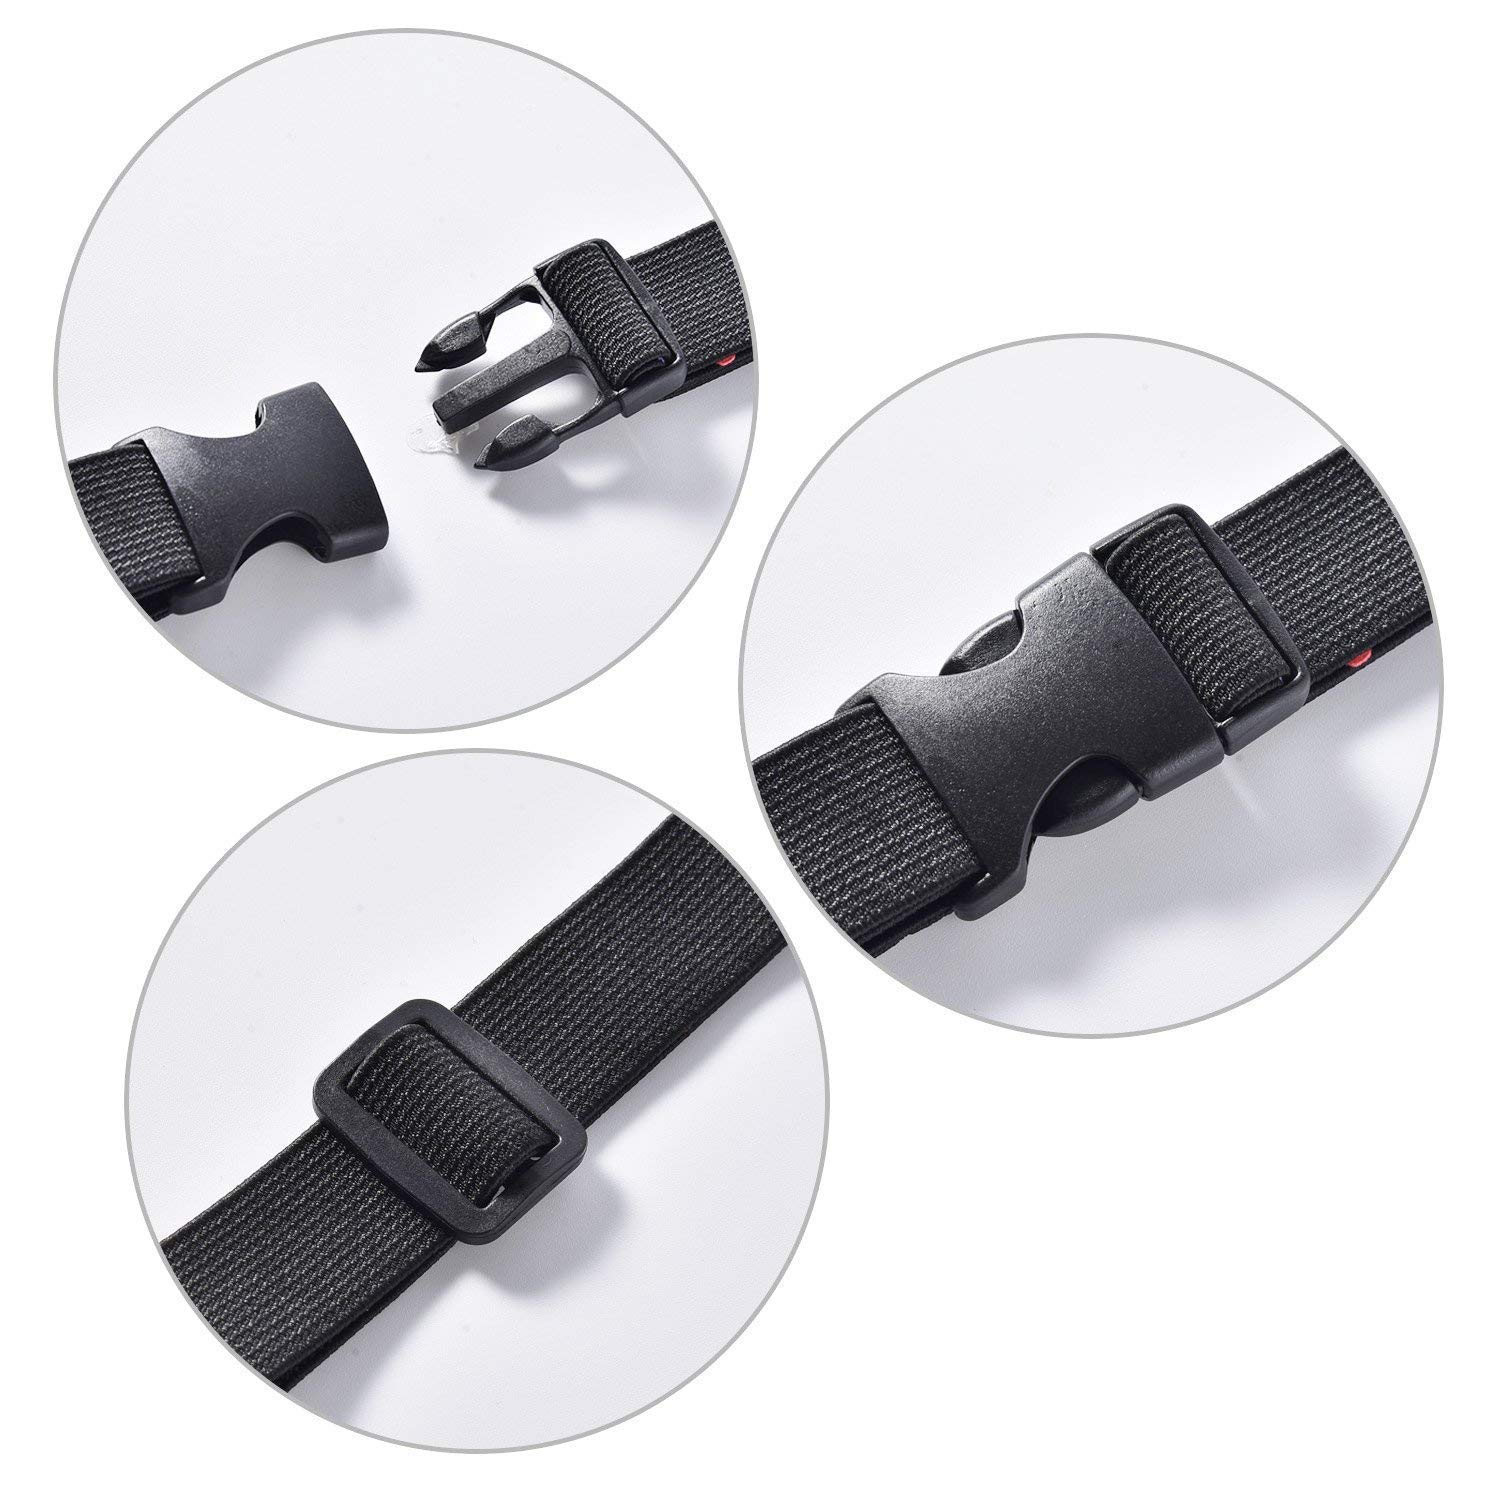 Trimming Shop 25mm x 67mm Plastic Black Buckle Adjustable Side Release Clasp and Triglide Slides for Webbing Straps 2pcs DIY Making Luggage Strap Pet Collar Tactical Bags